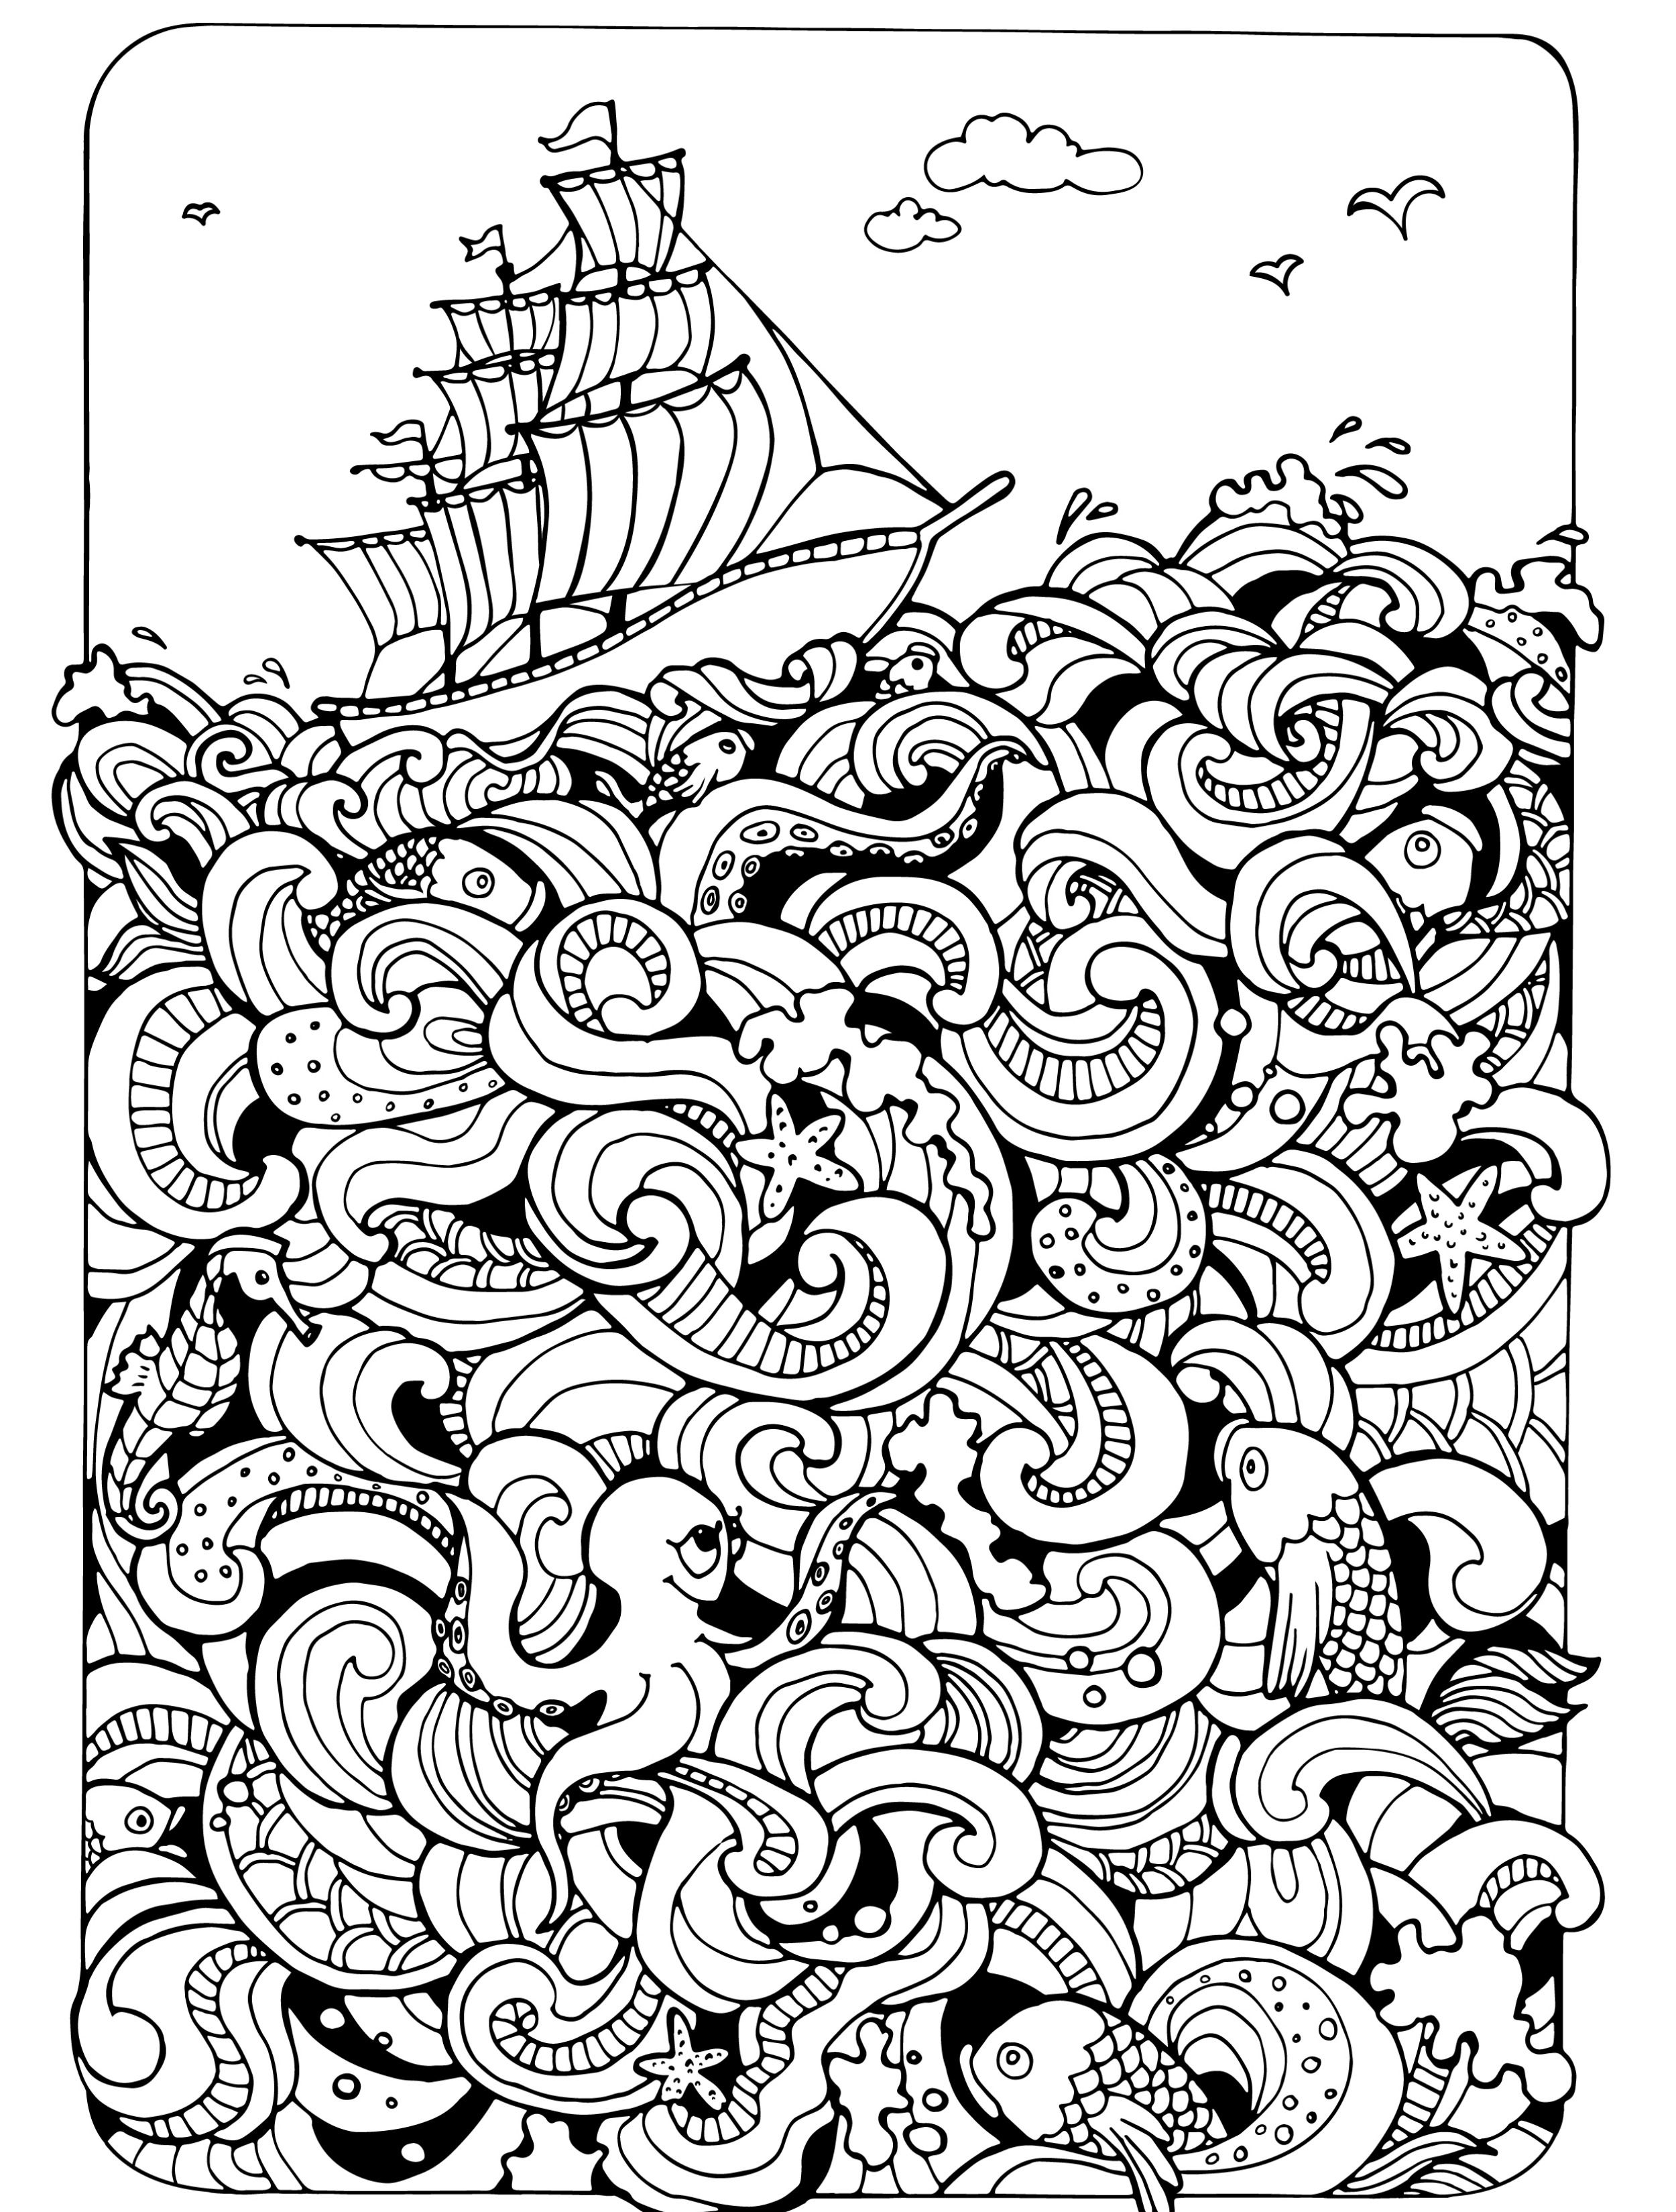 Free whimsical coloring pages for adults - 18 Absurdly Whimsical Adult Coloring Pages Page 3 Of 20